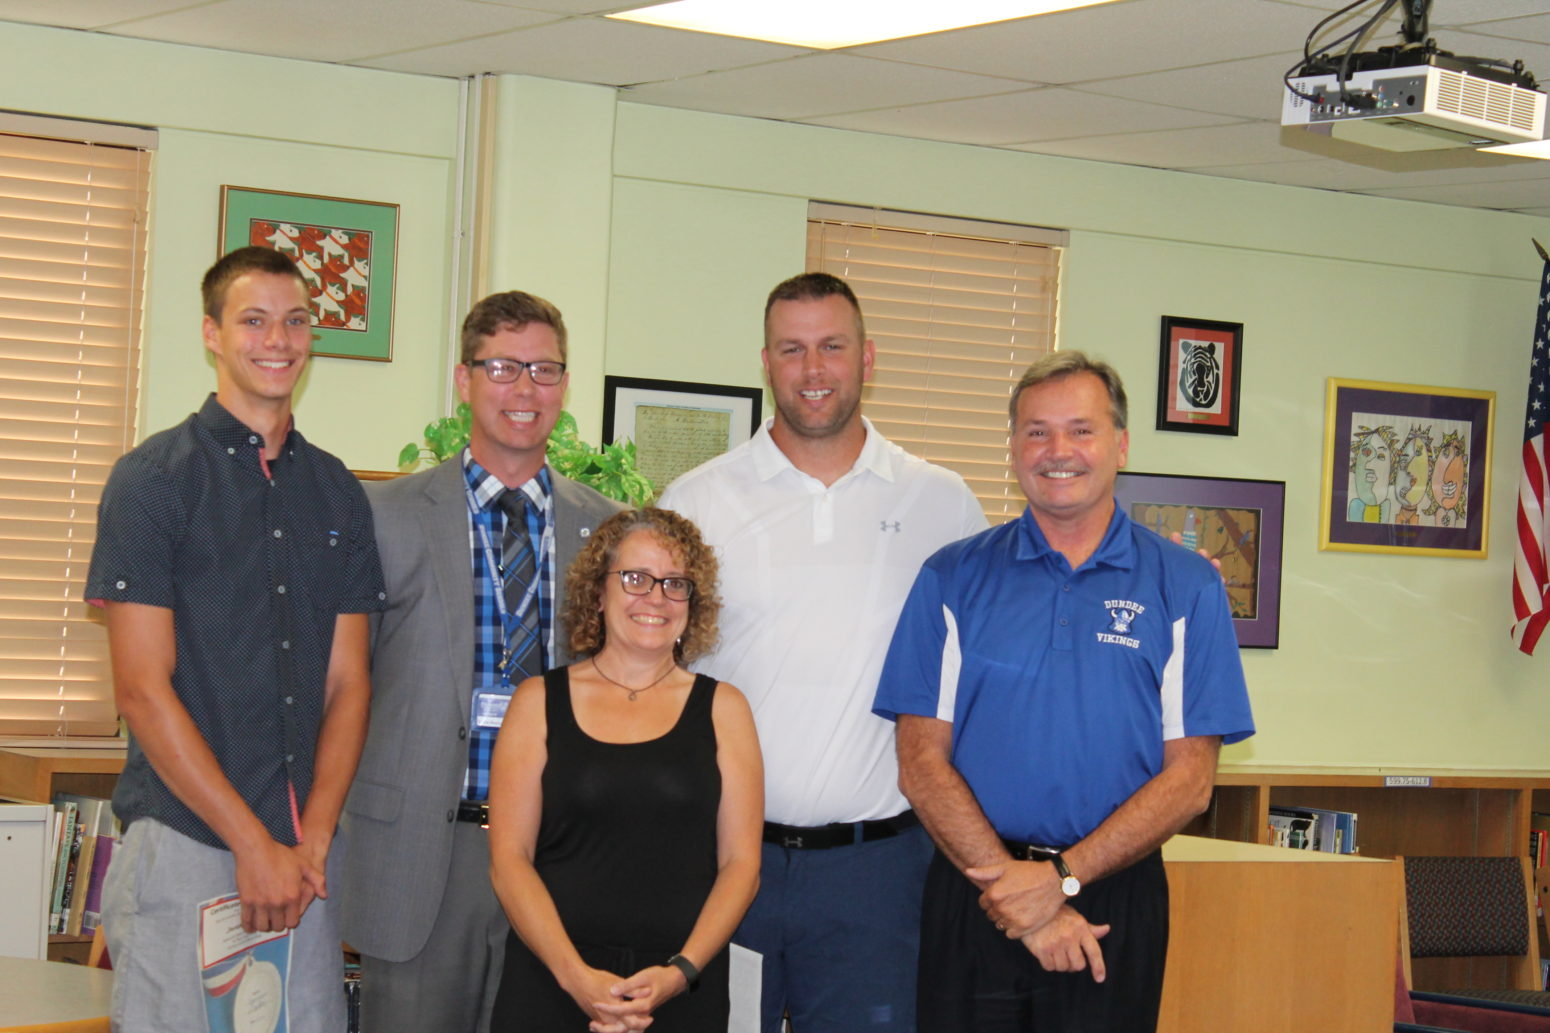 Dundee School board recognizes athletes